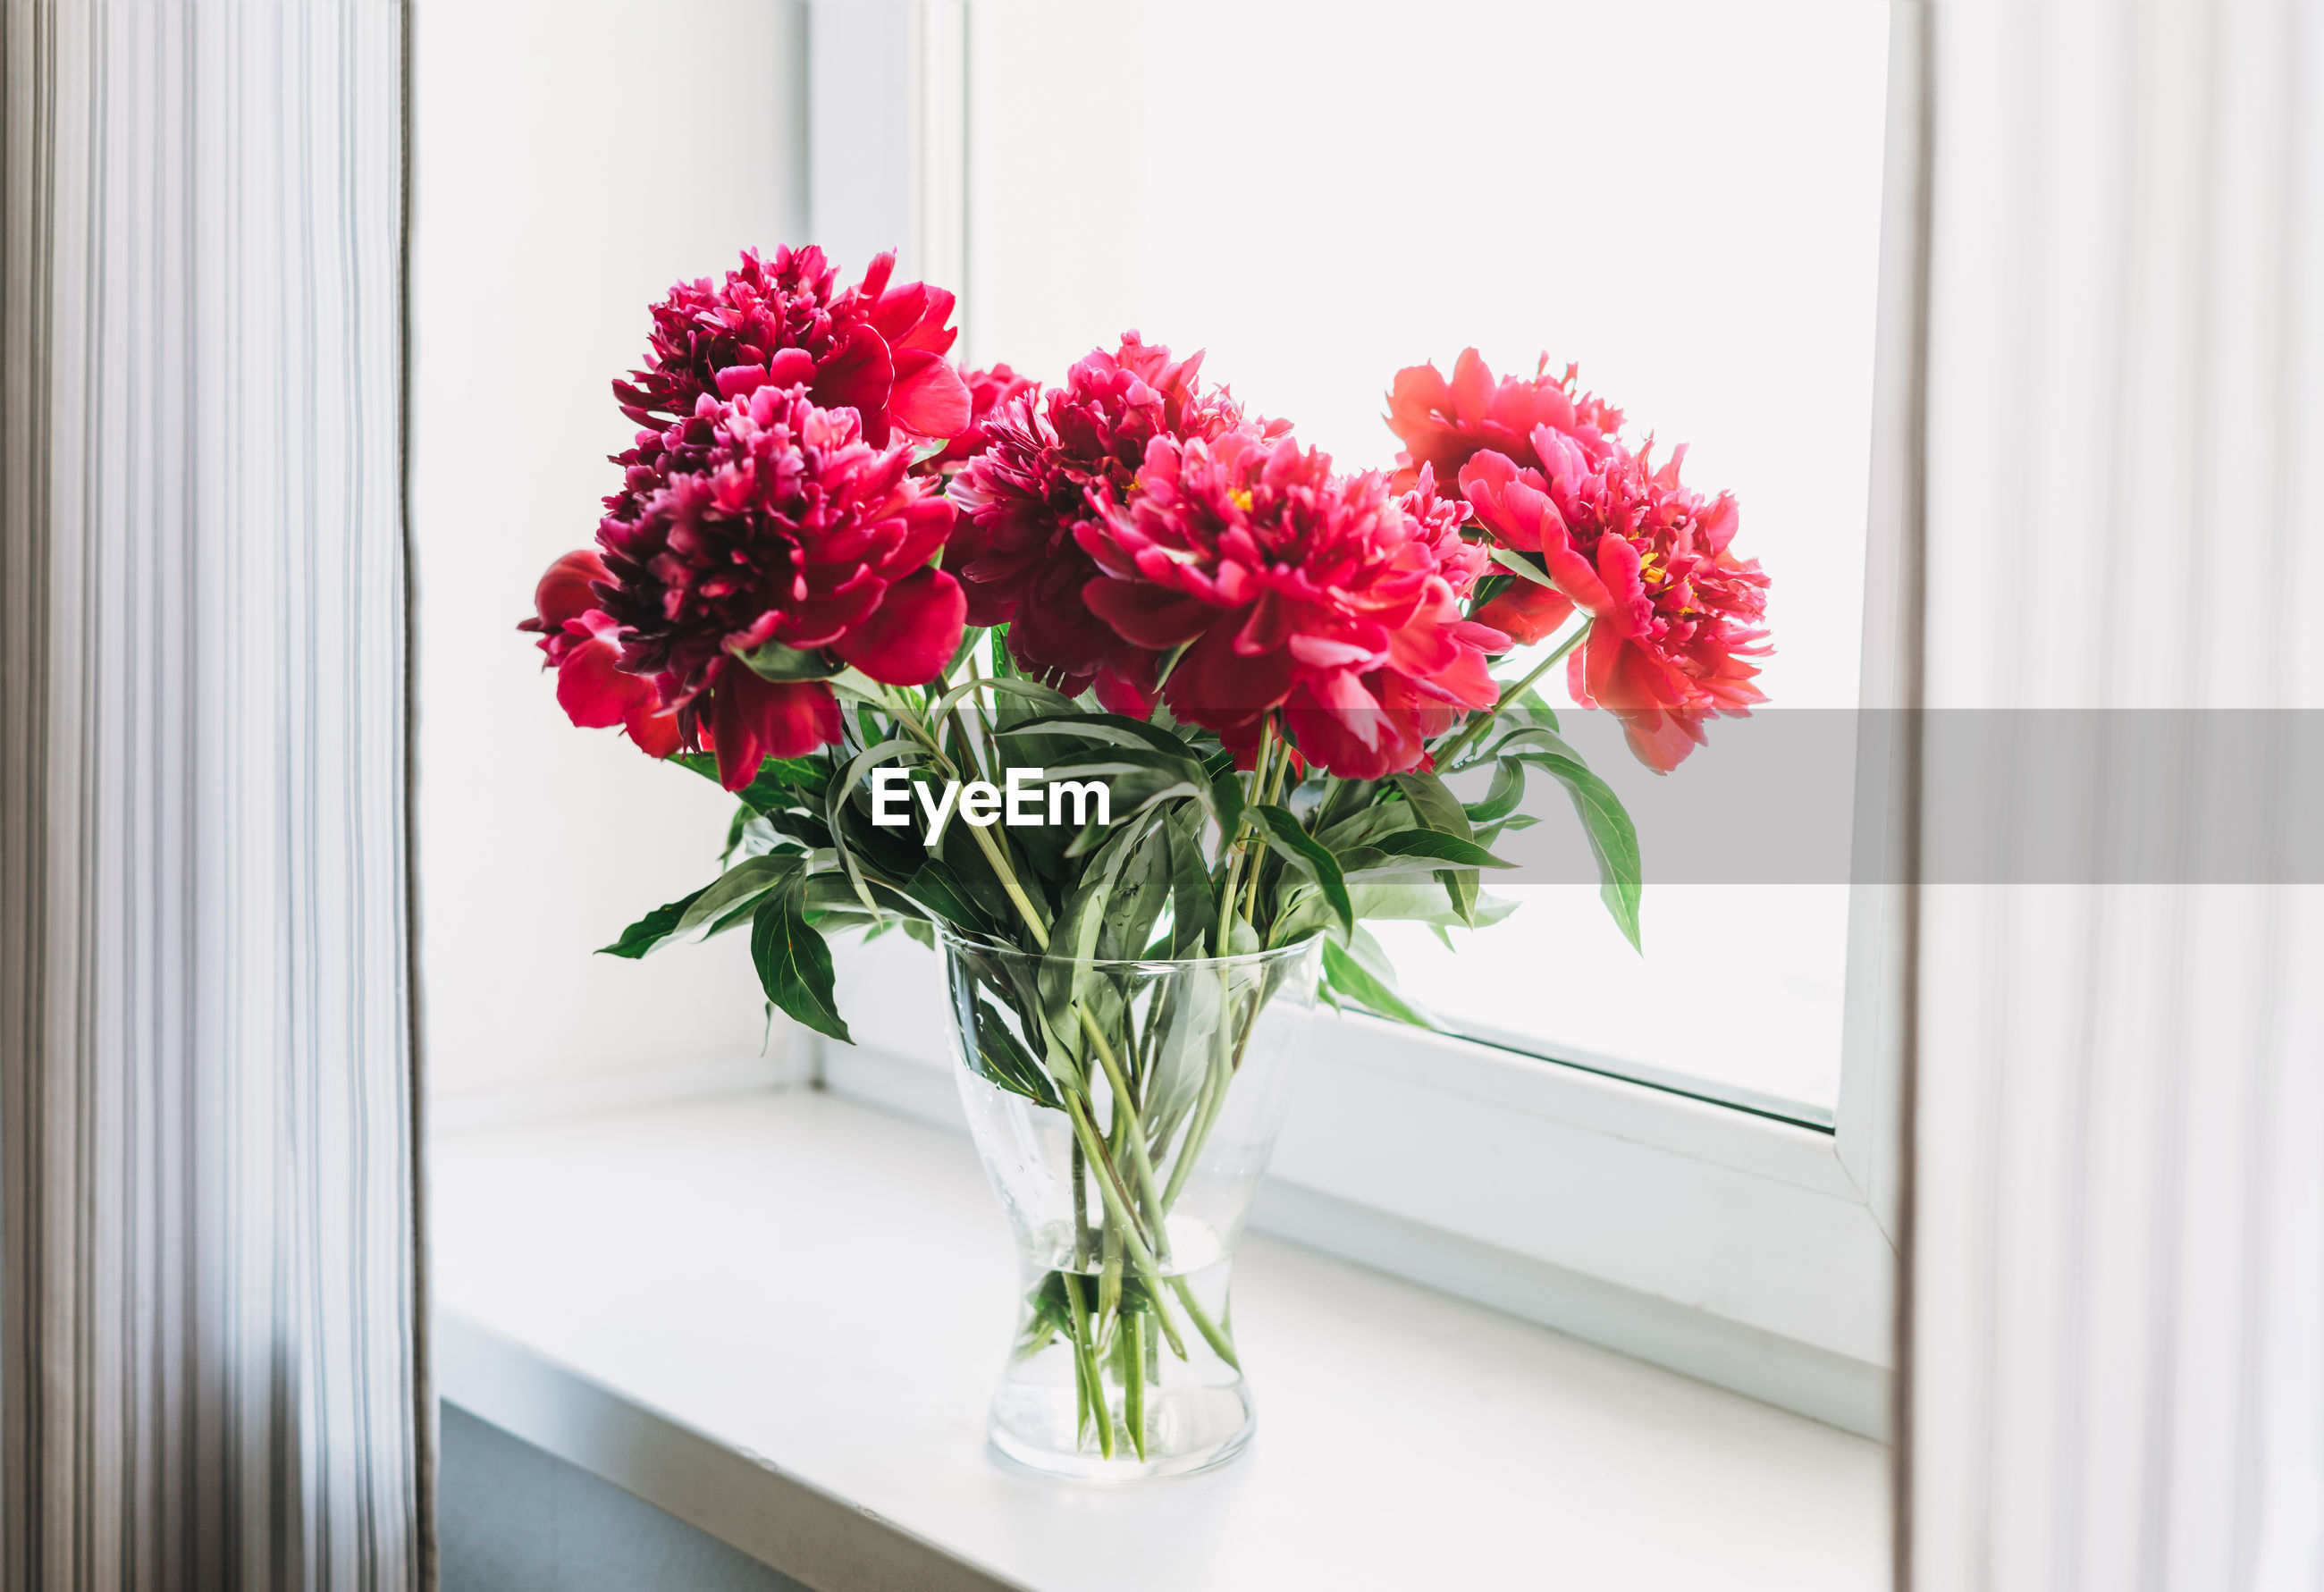 CLOSE-UP OF RED FLOWER VASE ON TABLE